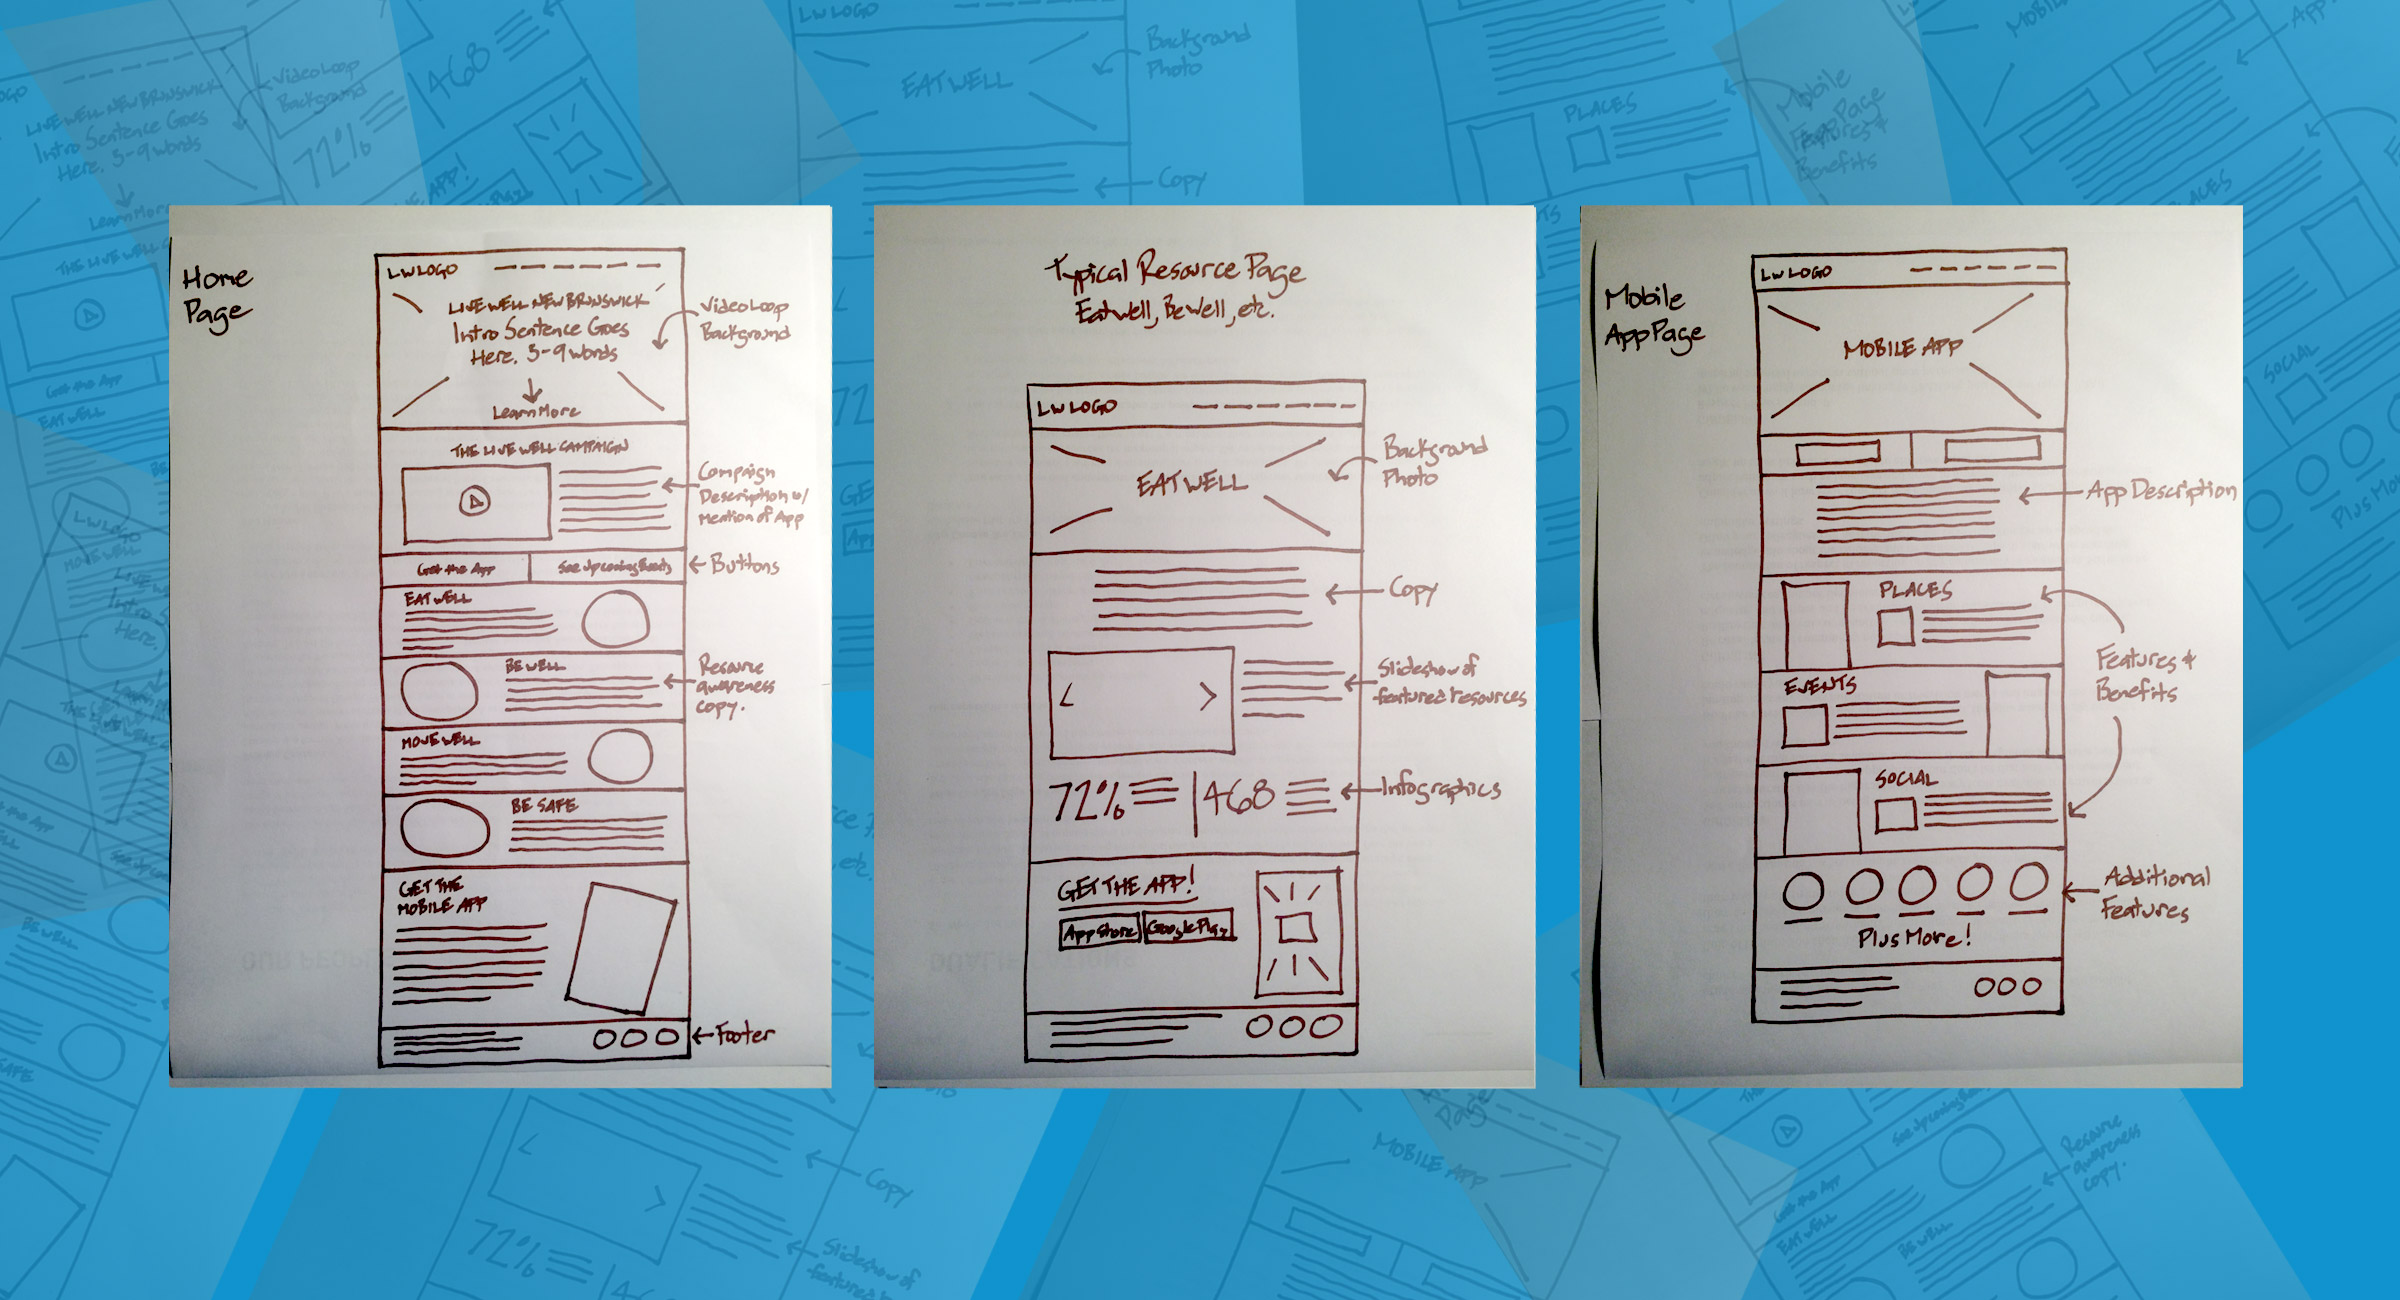 Live Well New Brunswick Wireframe Sketches